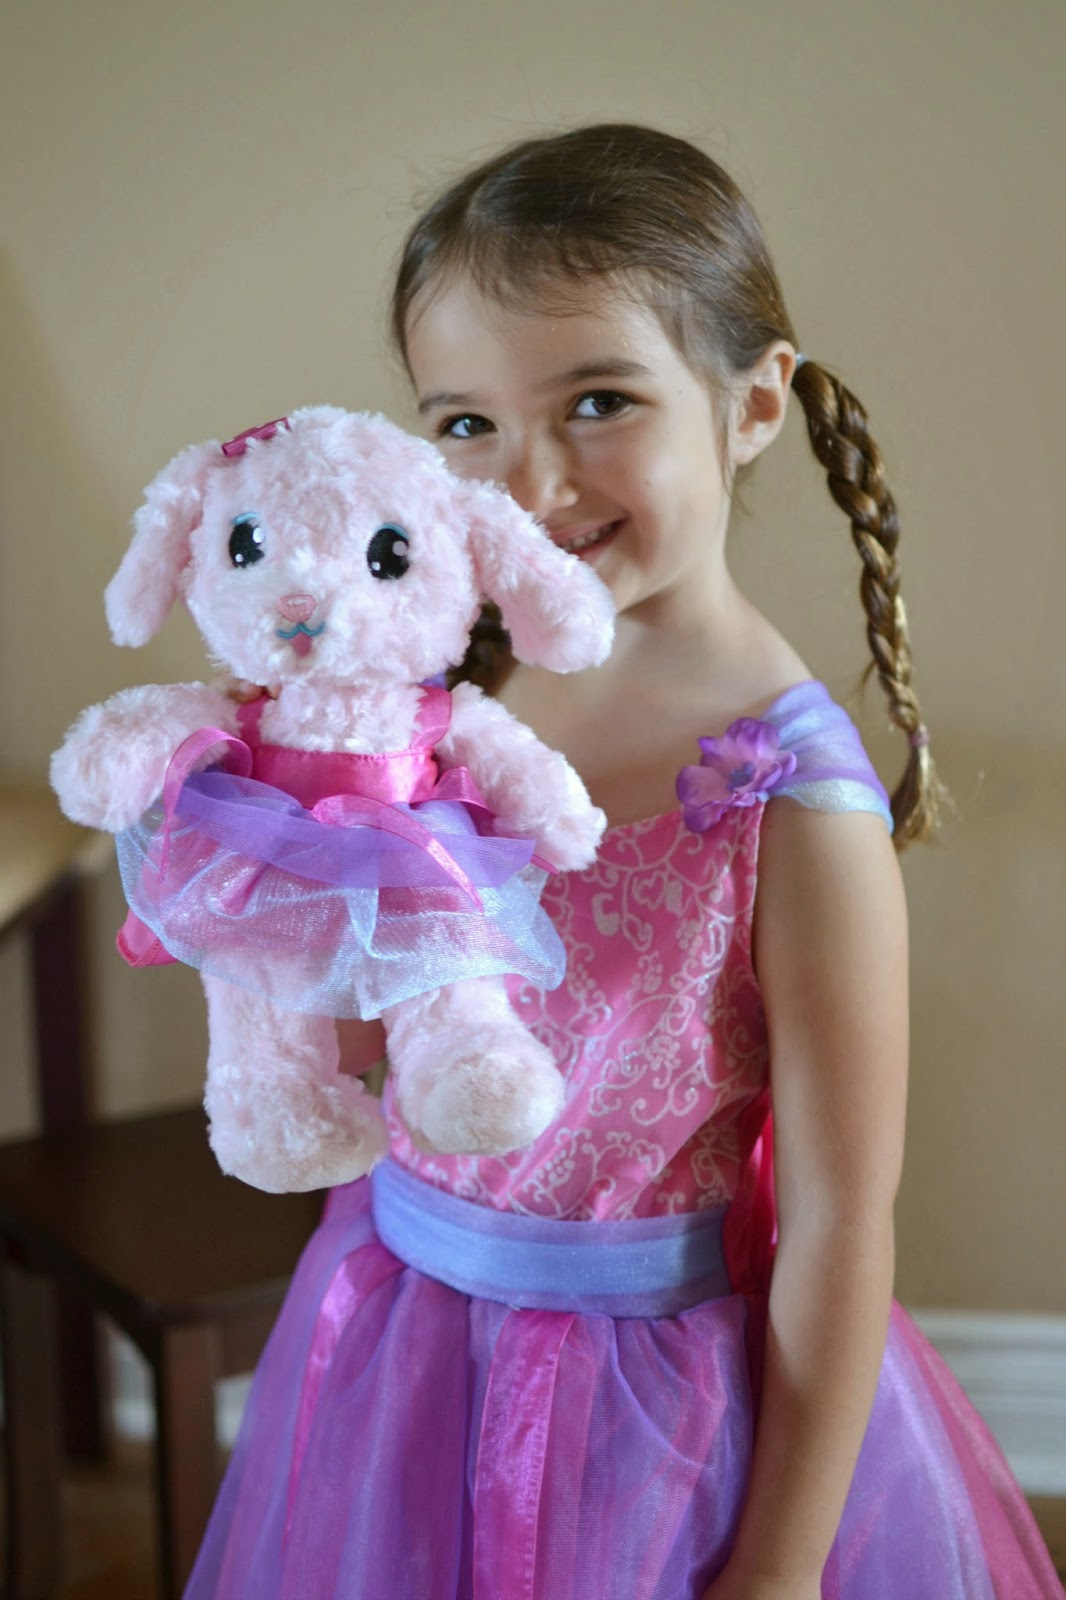 Mommy Testers, Whimsy and Wonder, Whimsy & Wonder dress up, Whimsy & Wonder Target exclusive, Dress up tea party, #whimsyandwonder